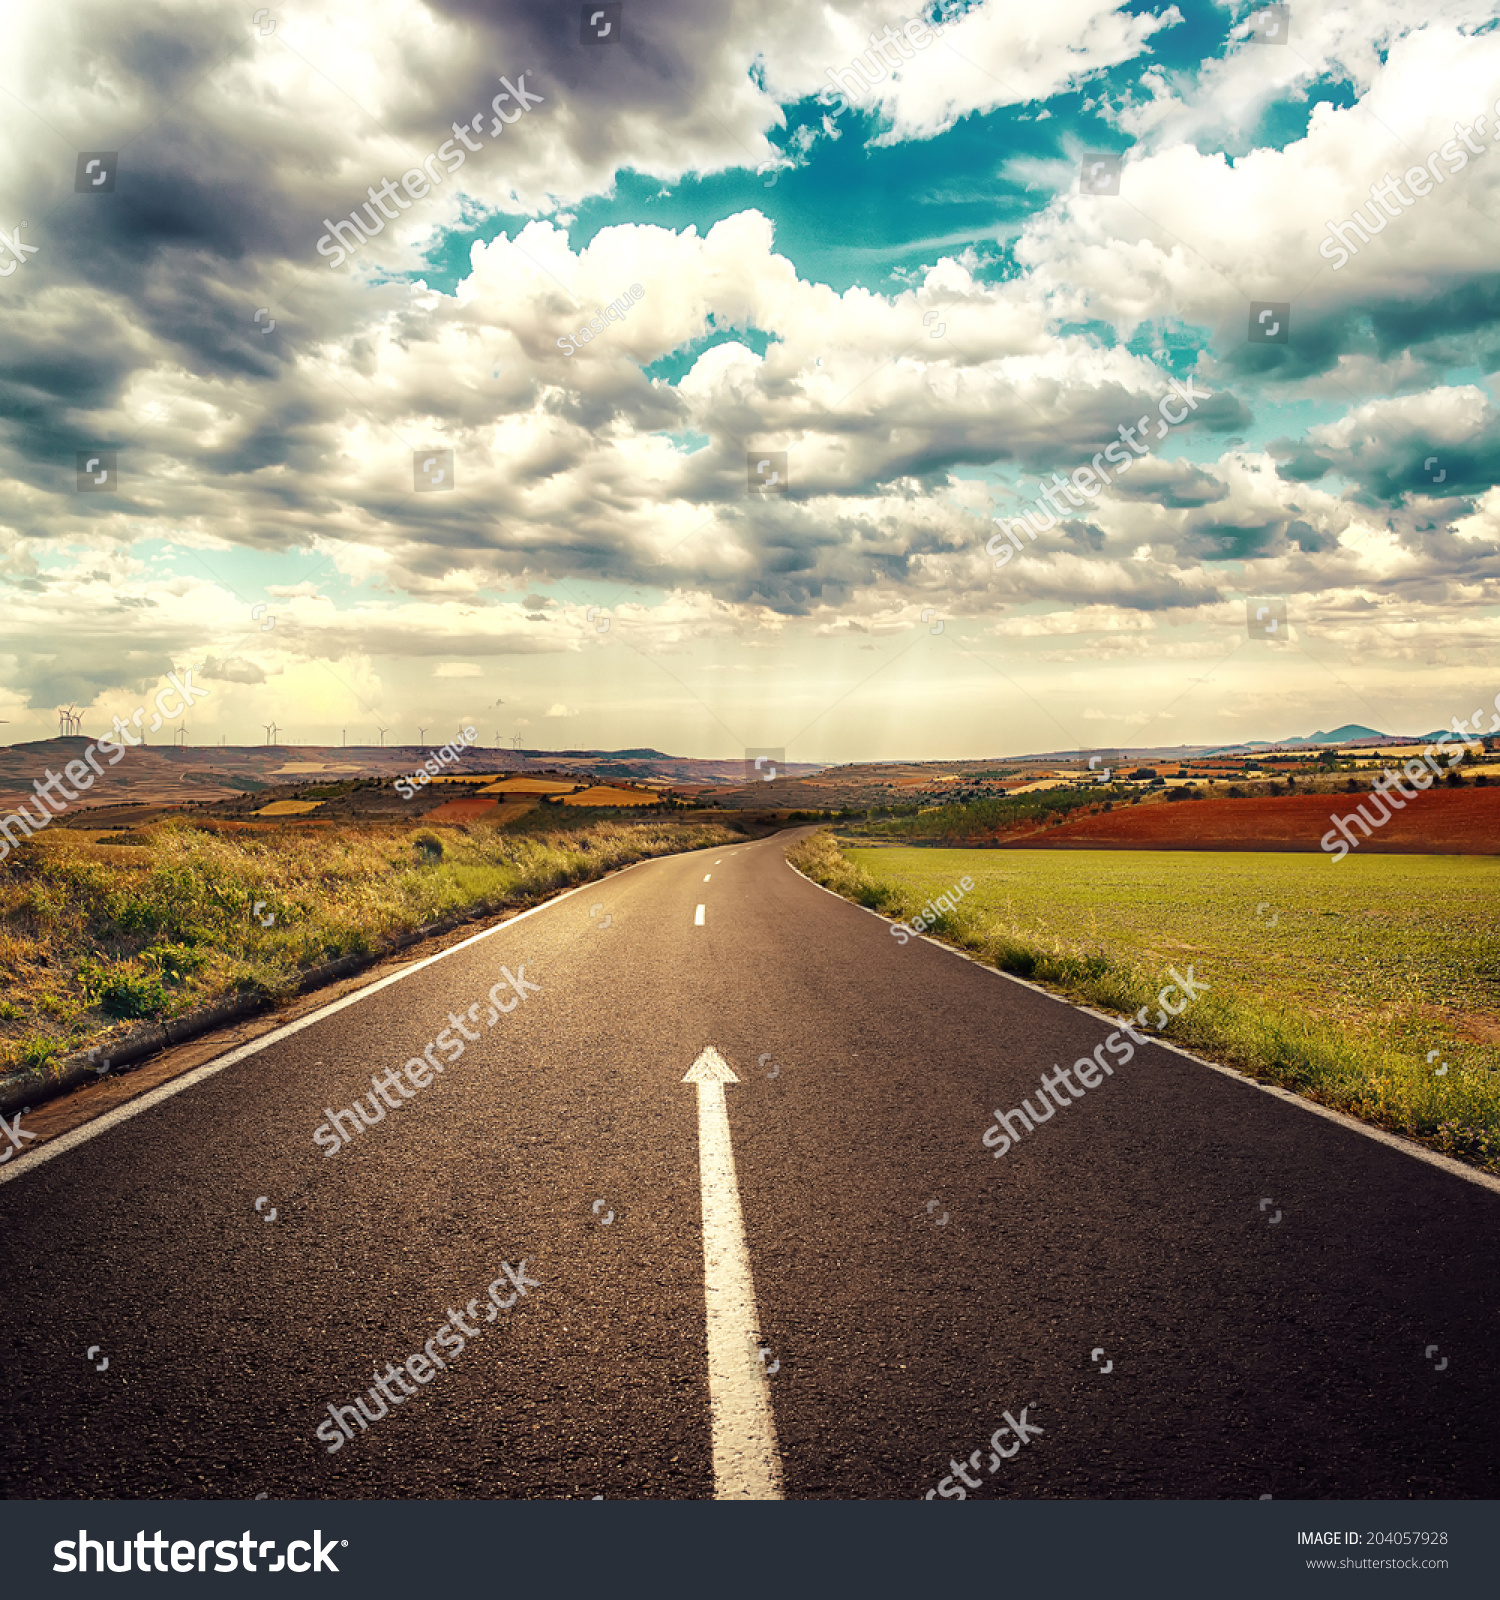 concept straight way business new career stock photo  concept of straight way for business and new career start asphalt road over cloudscape background